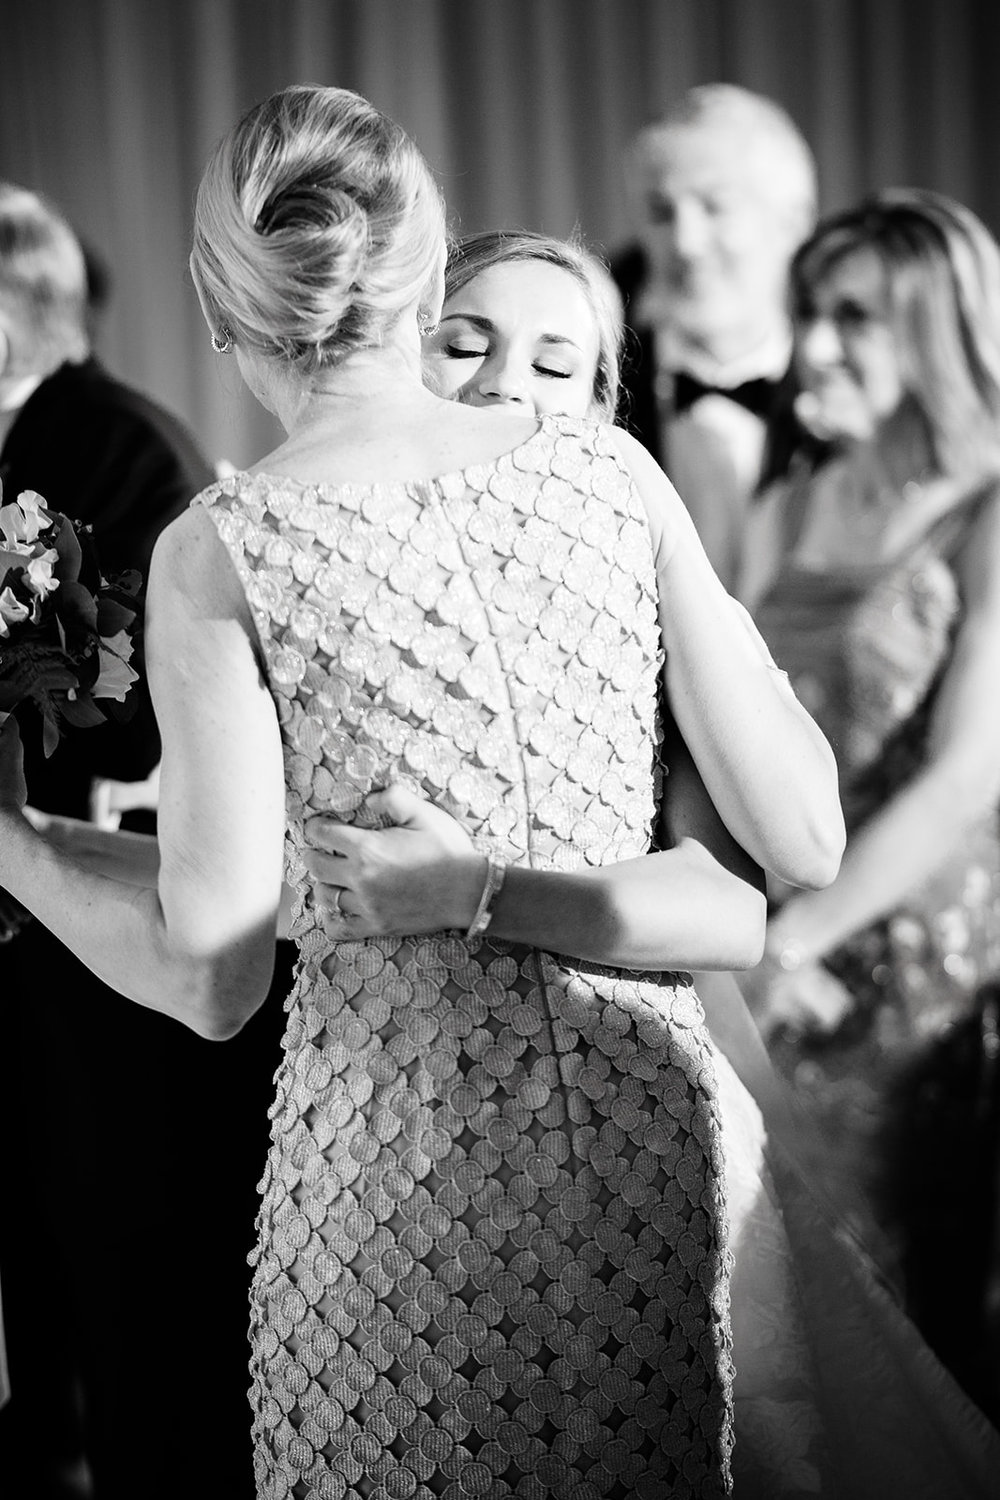 A bride hugs her mother at the beginning of the wedding ceremony in this black and white documentary wedding photo